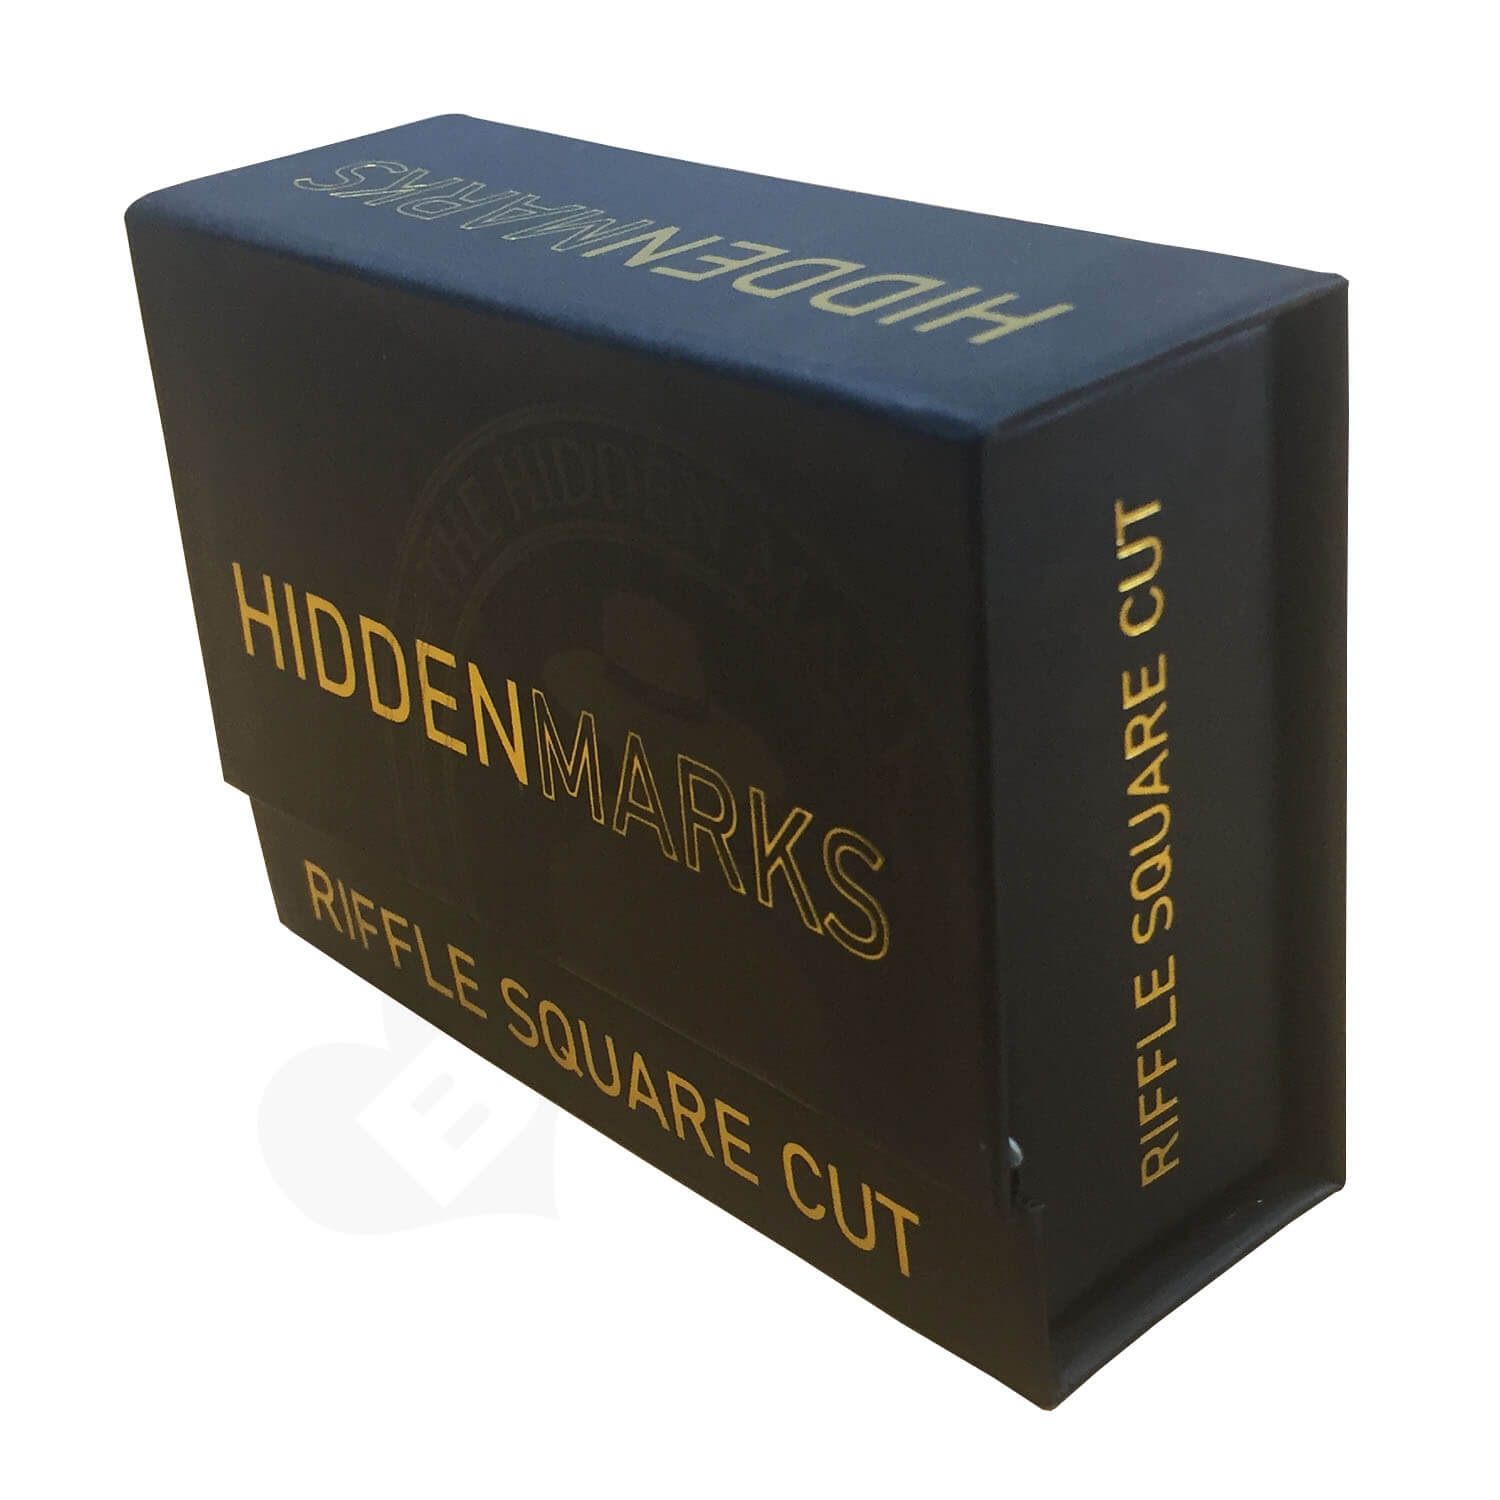 Hinged Magnetic Closure Lid Box with v shaped cut interior Side View 2